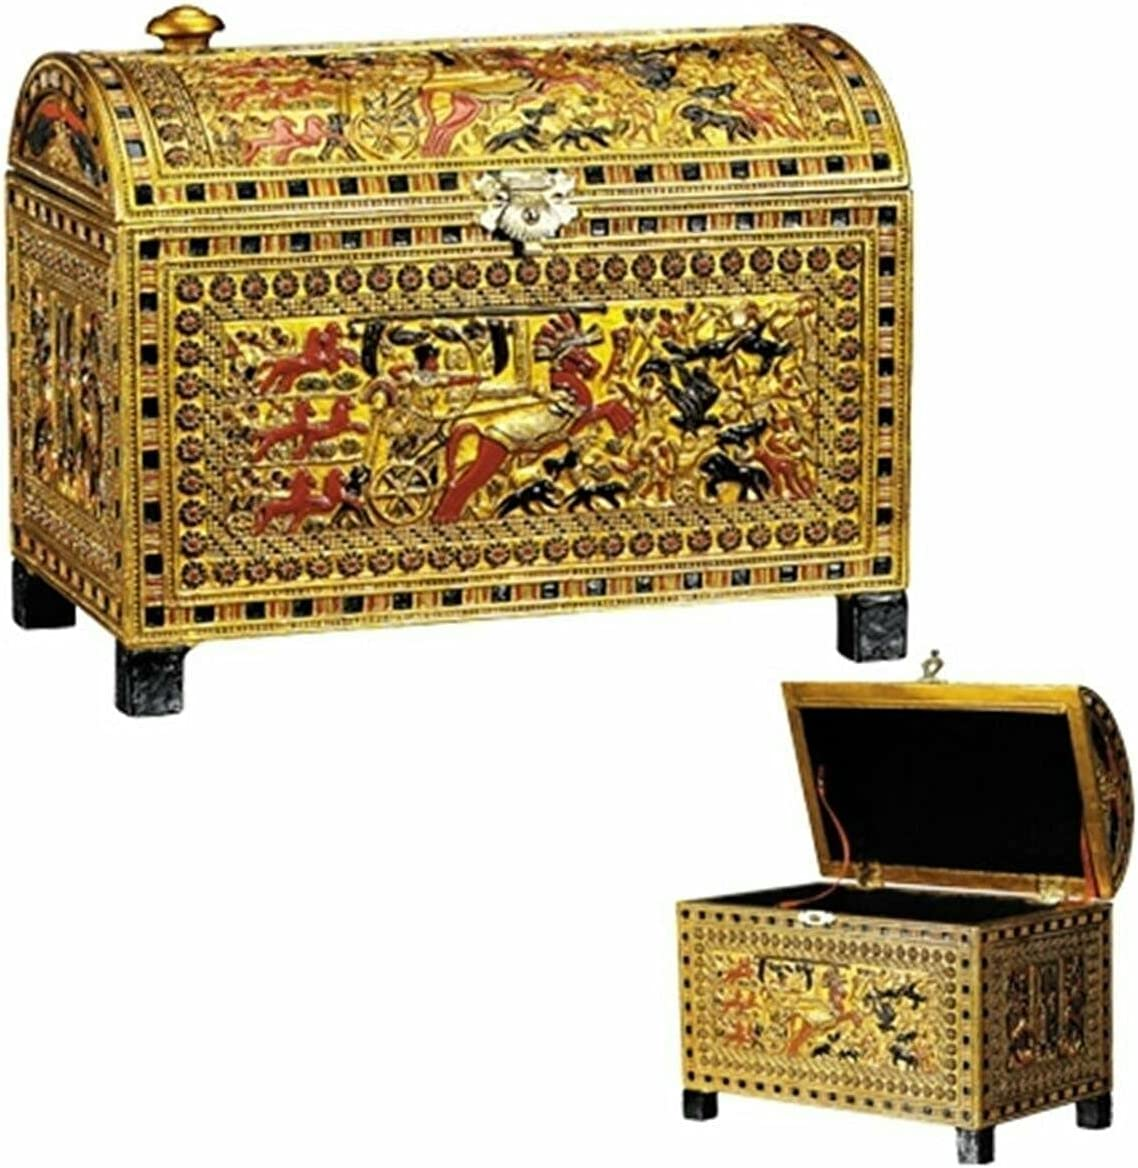 The Decor San Francisco Mall That is Adored Egyptian TUT Jewelry Max 78% OFF Scene King Chariot